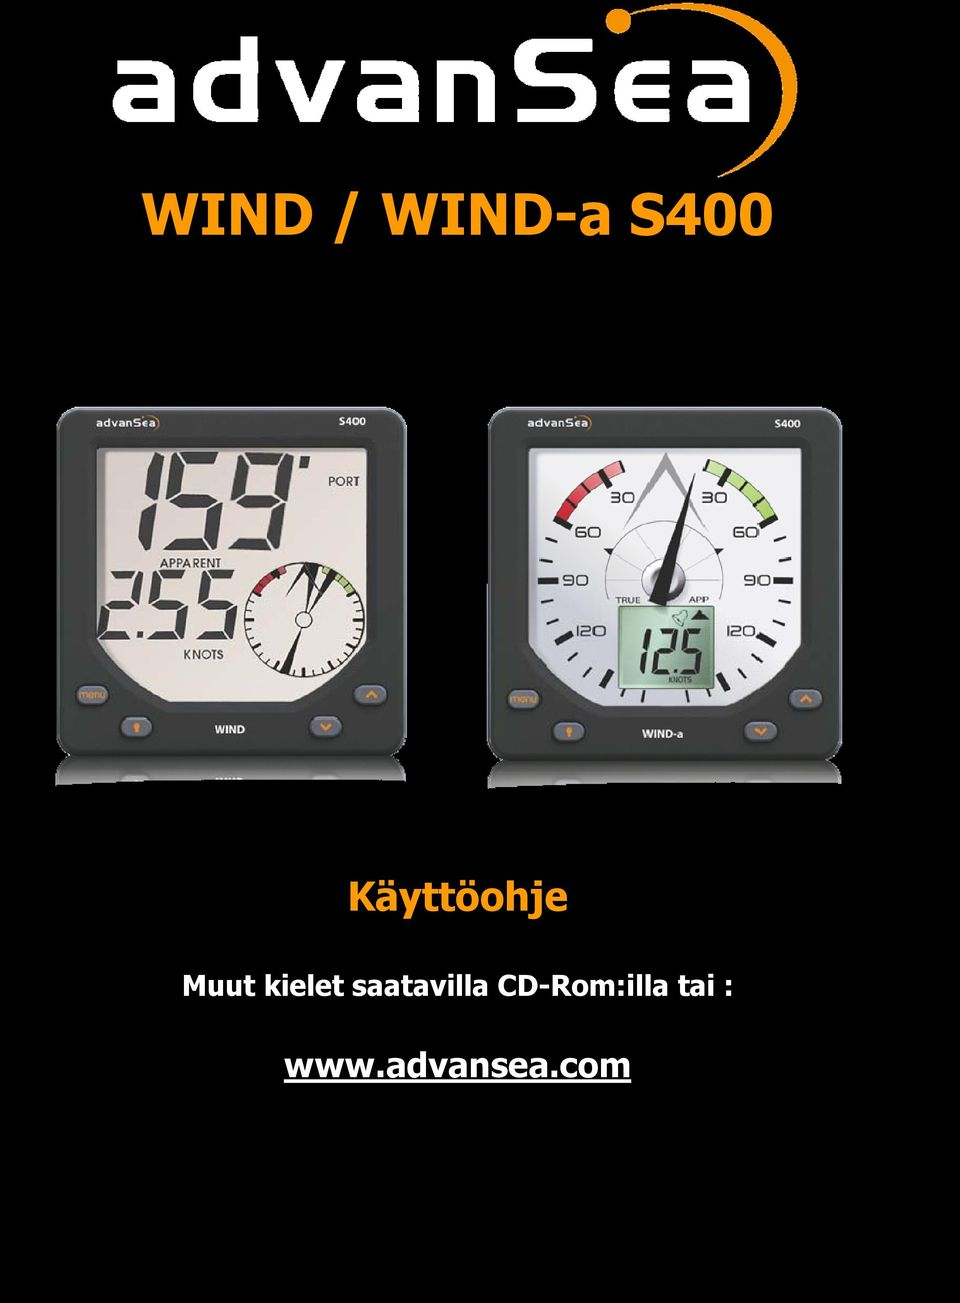 50 WIND / WIND-a S400 USER MANUAL